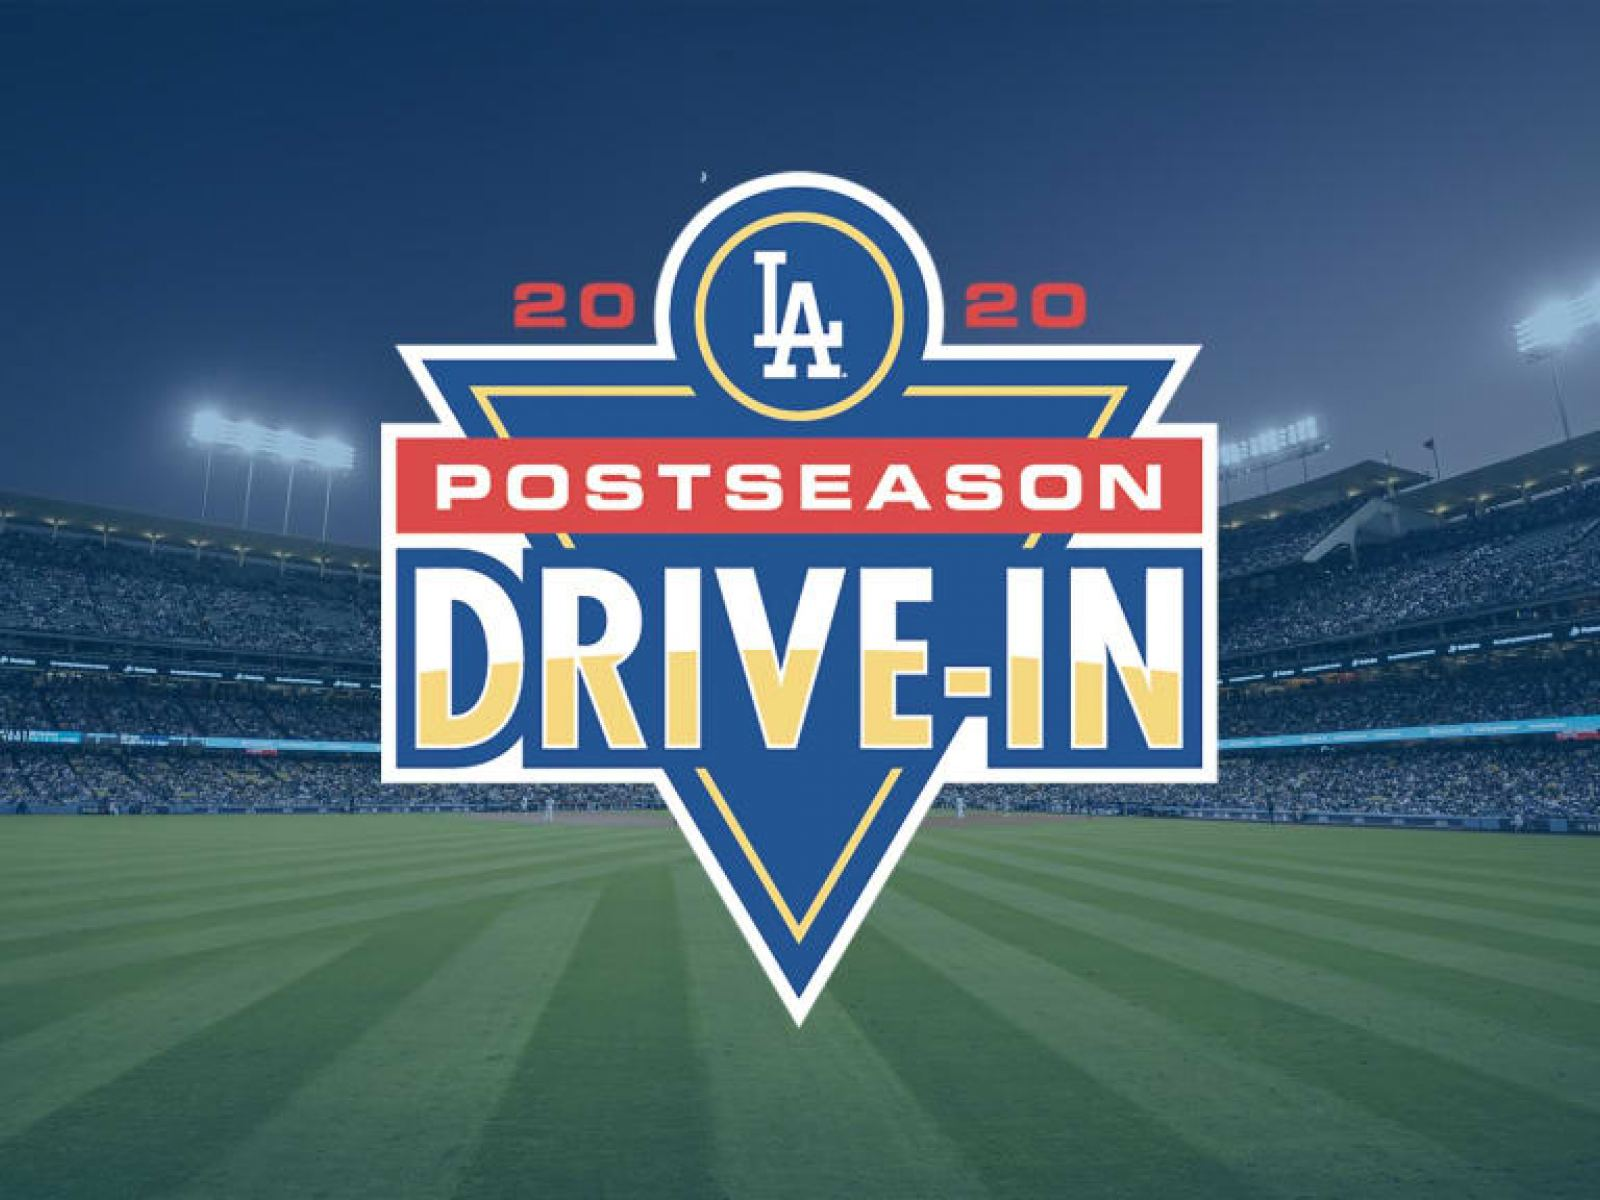 Main image for event titled LA Dodgers vs. Tampa Bay Rays (World Series, Game 1): DRIVE-IN AT DODGER STADIUM